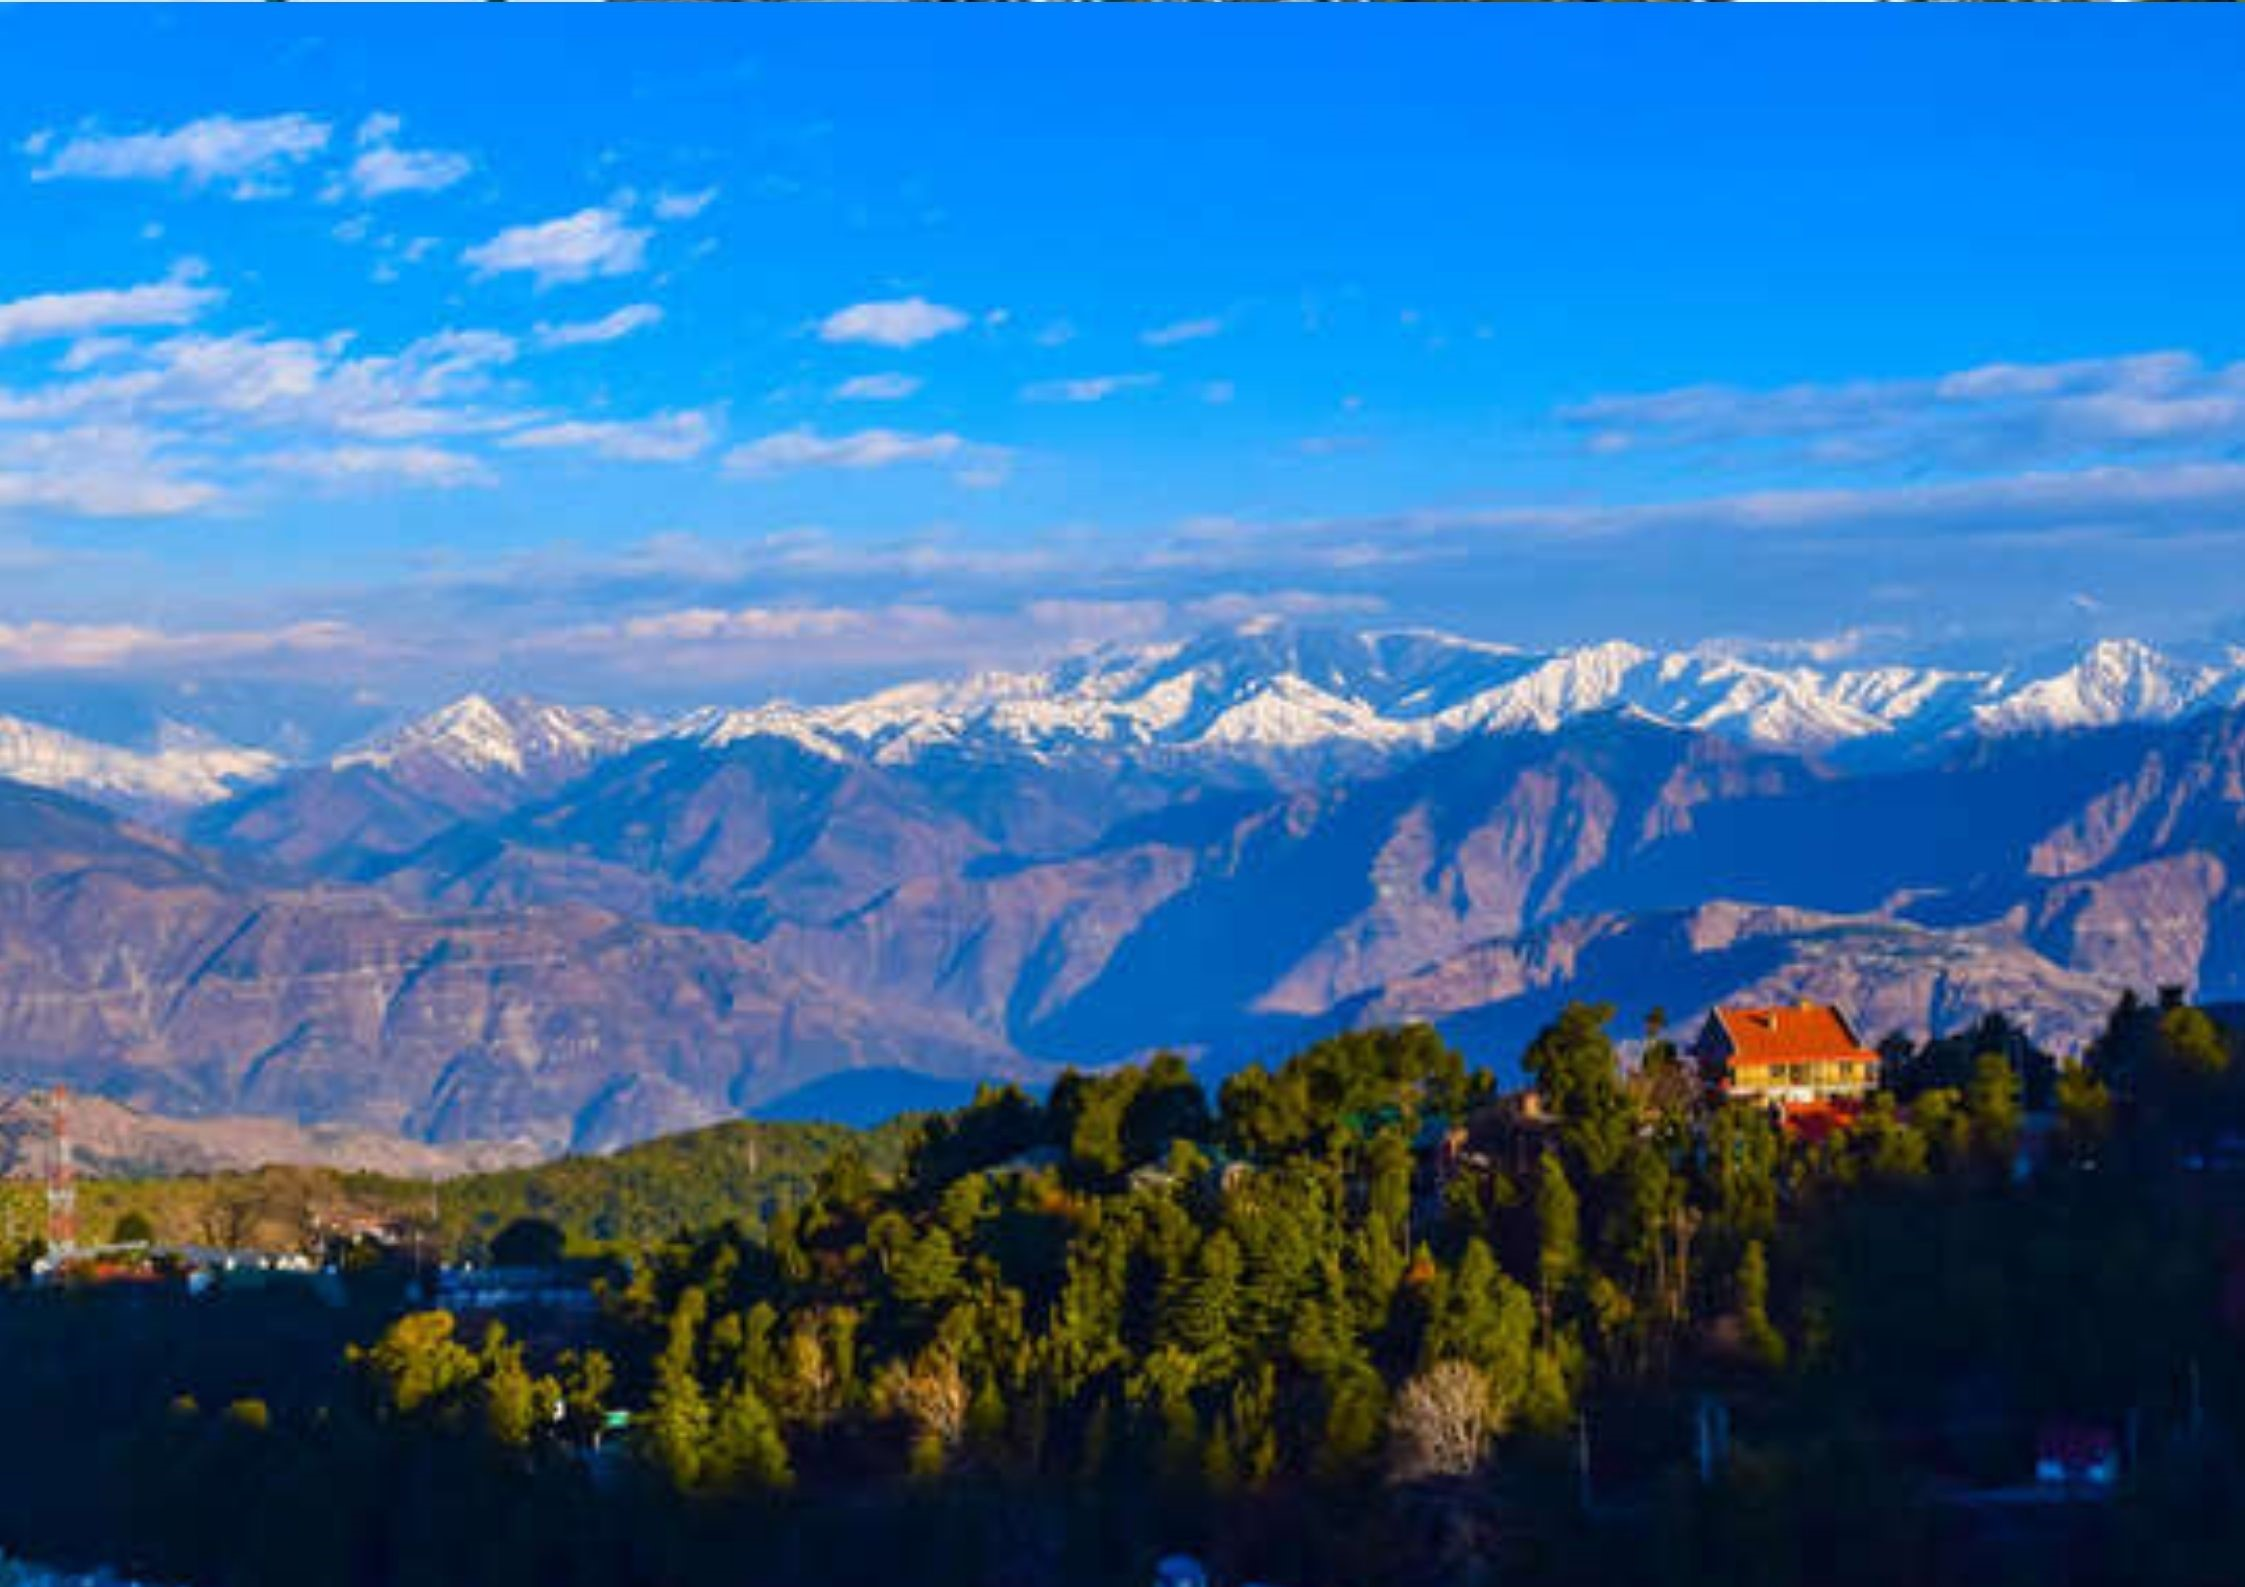 Dalhousie, hill station in north india